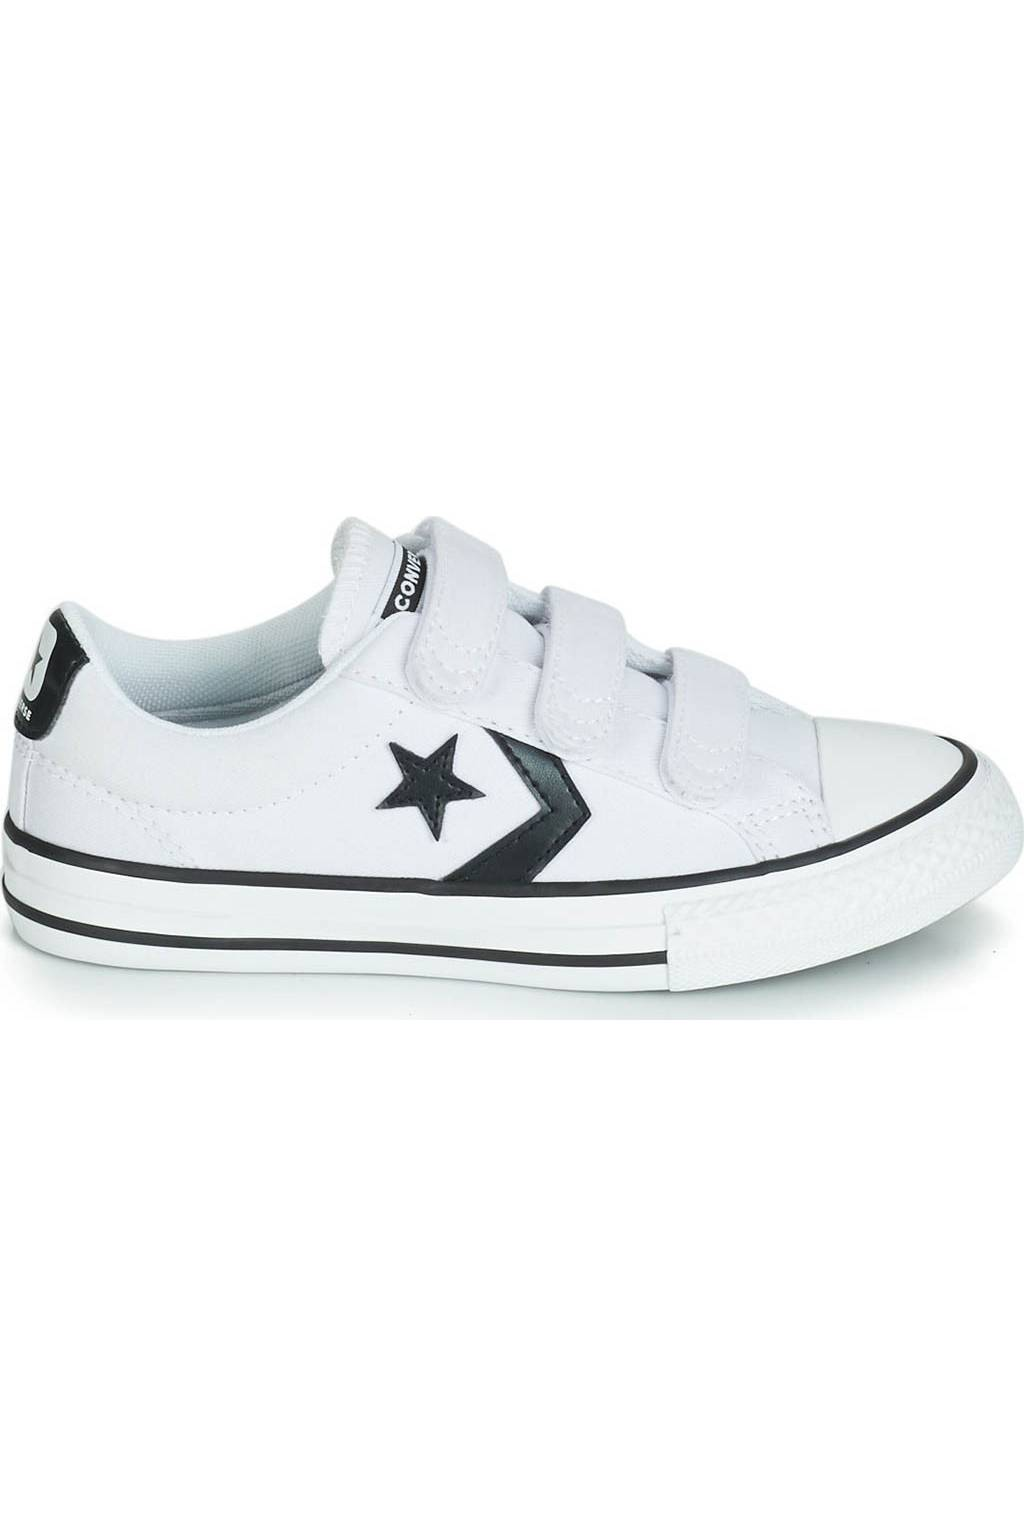 Converse Star Player 3V OX 663599C - medinapiel.es e3e563190853f